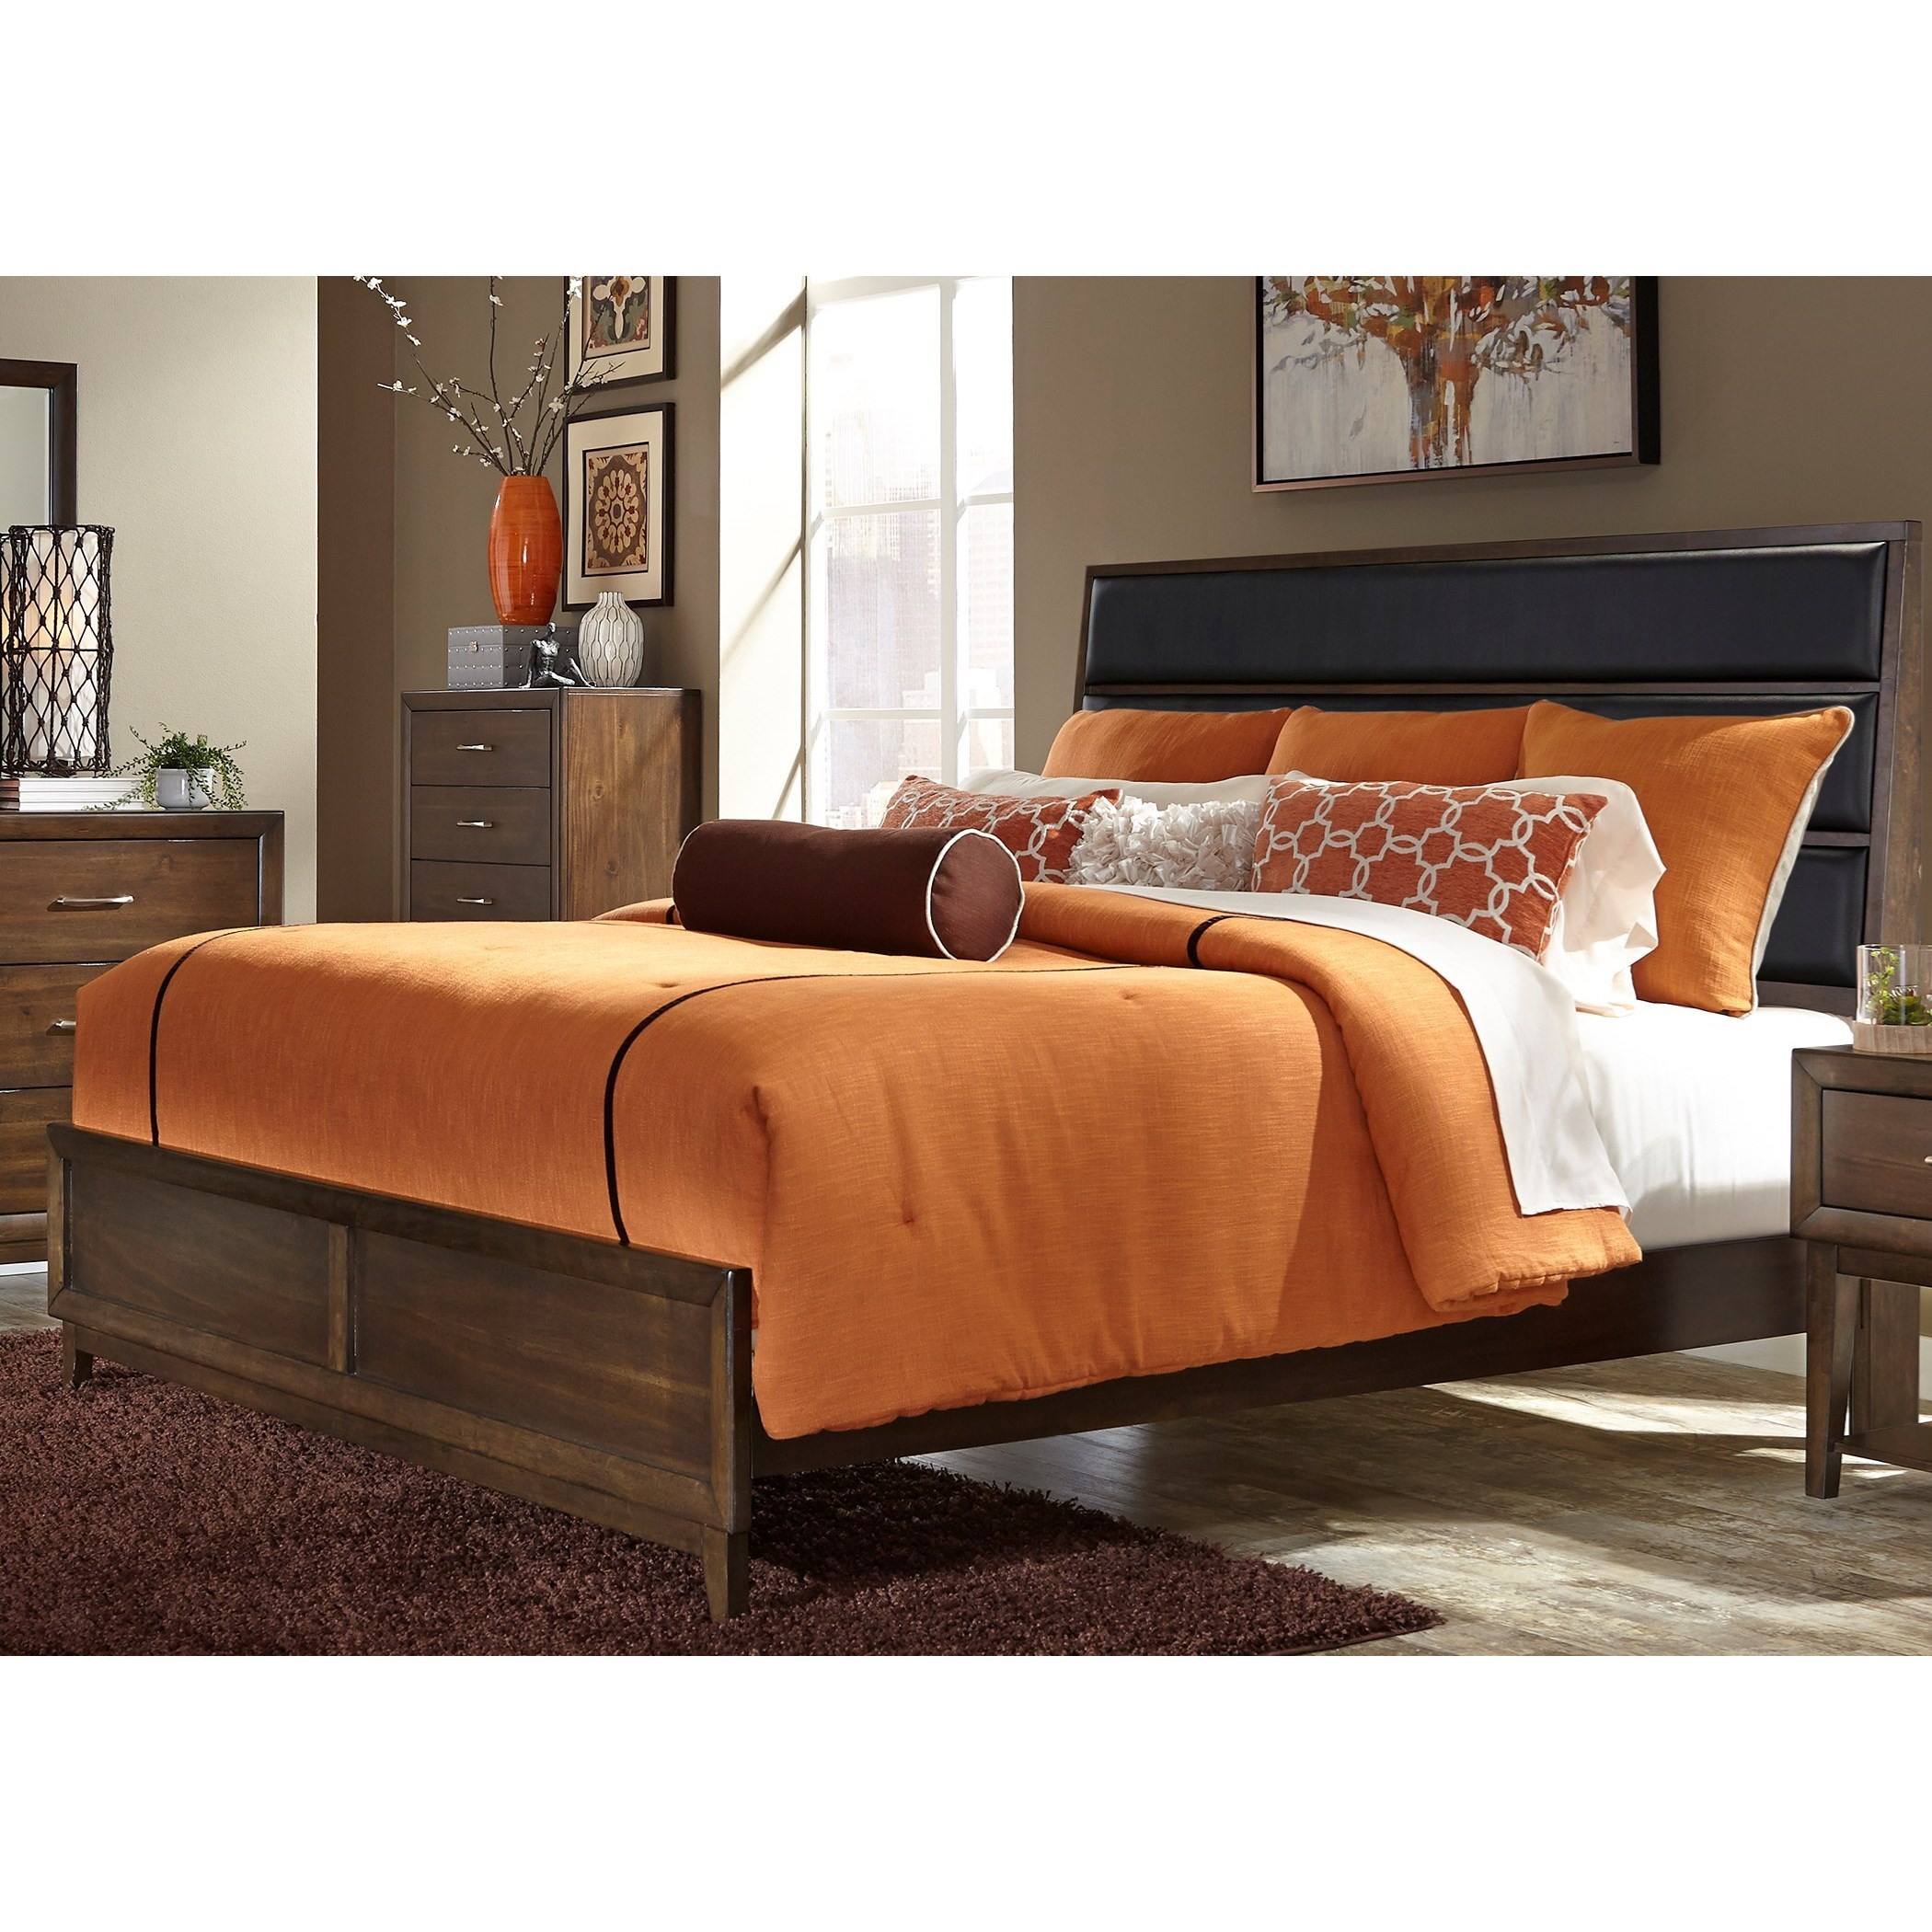 Liberty furniture hudson square bedroom 365 br qub queen for Furniture 365 direct